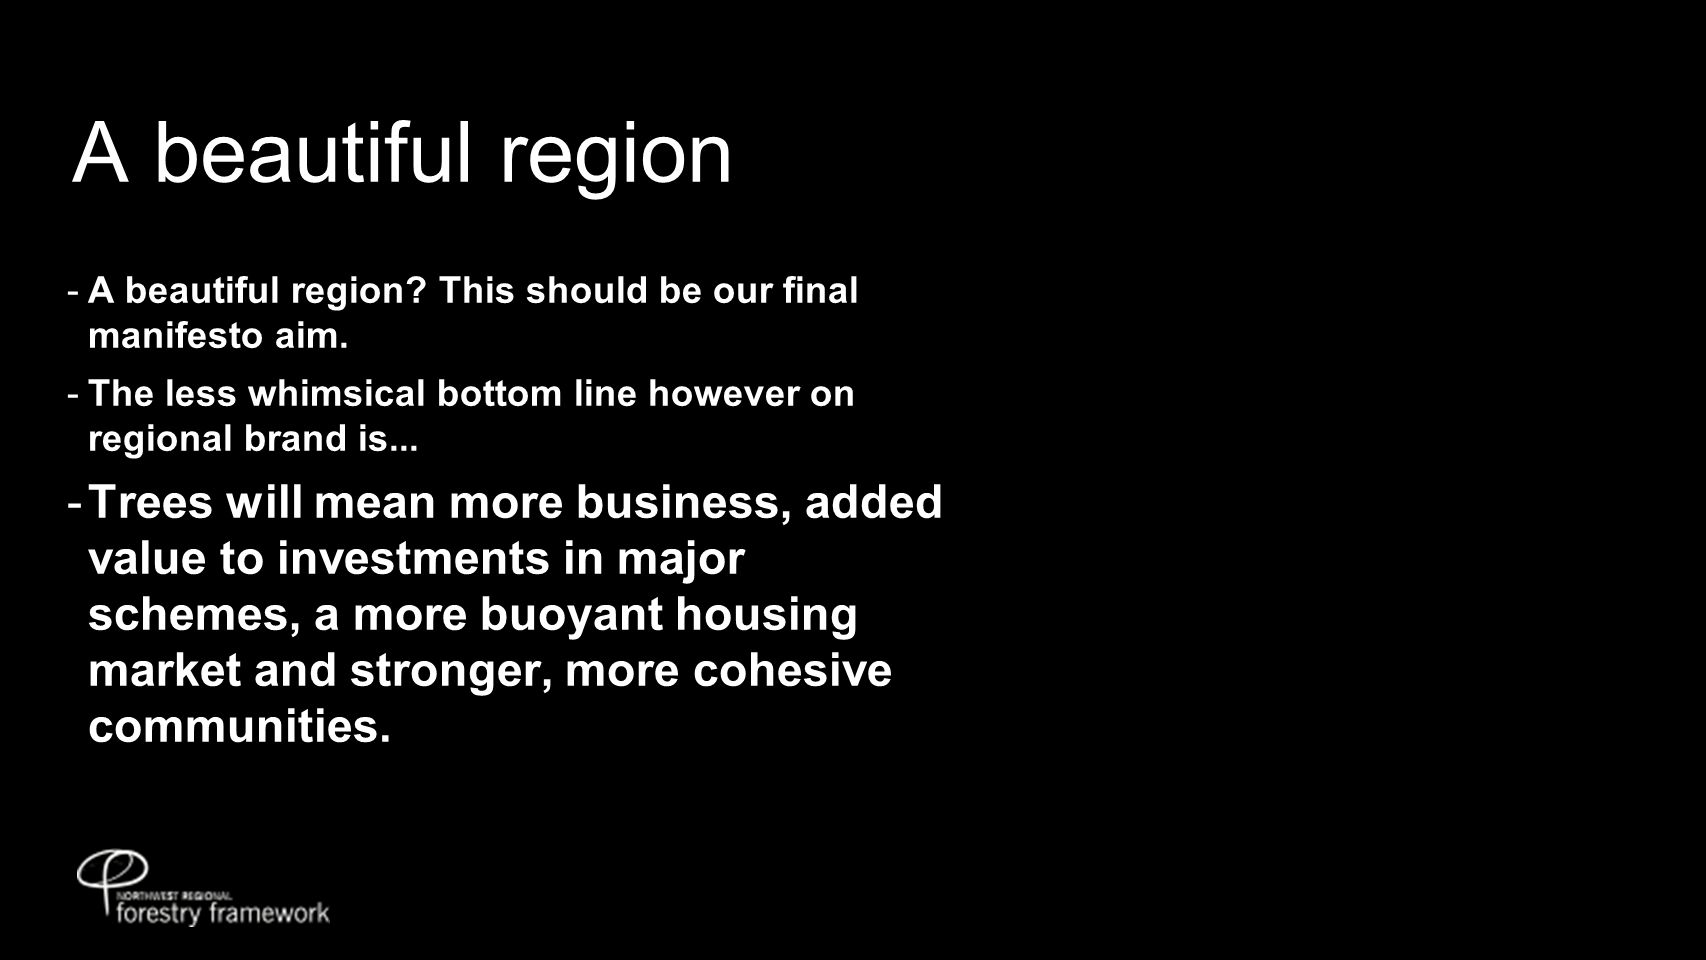 A beautiful region  A beautiful region. This should be our final manifesto aim.